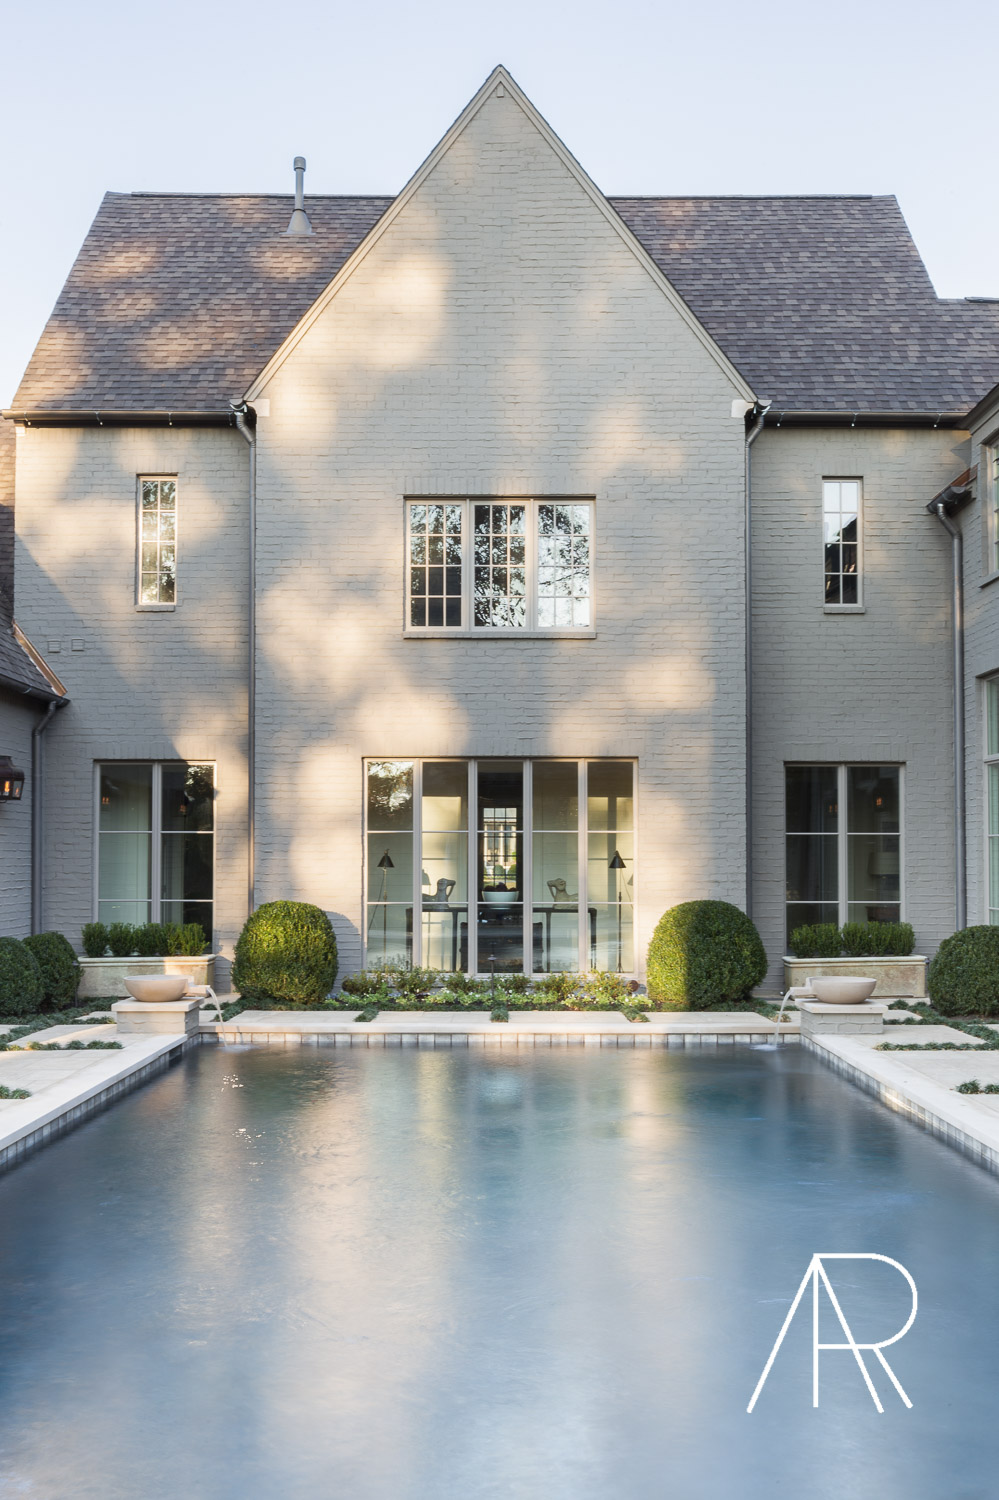 ©AlyssaRosenheck Alyssa Rosenheck's The New Southern Designer Spotlight with Sean Anderson, Interior Designer of Memphis, TN Pool Courtyard